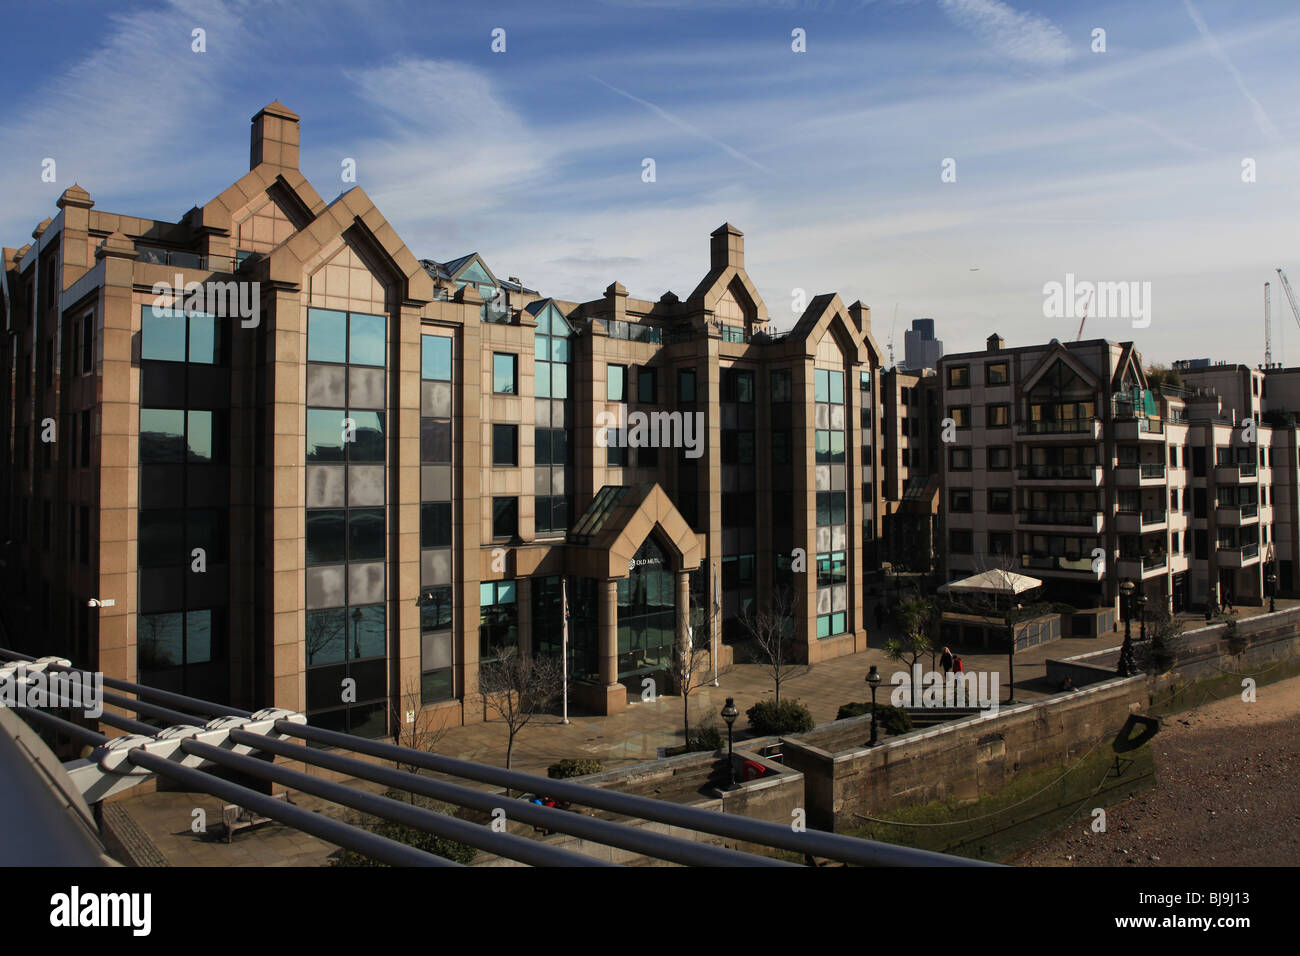 The Old Mutual headquarters in London - Stock Image